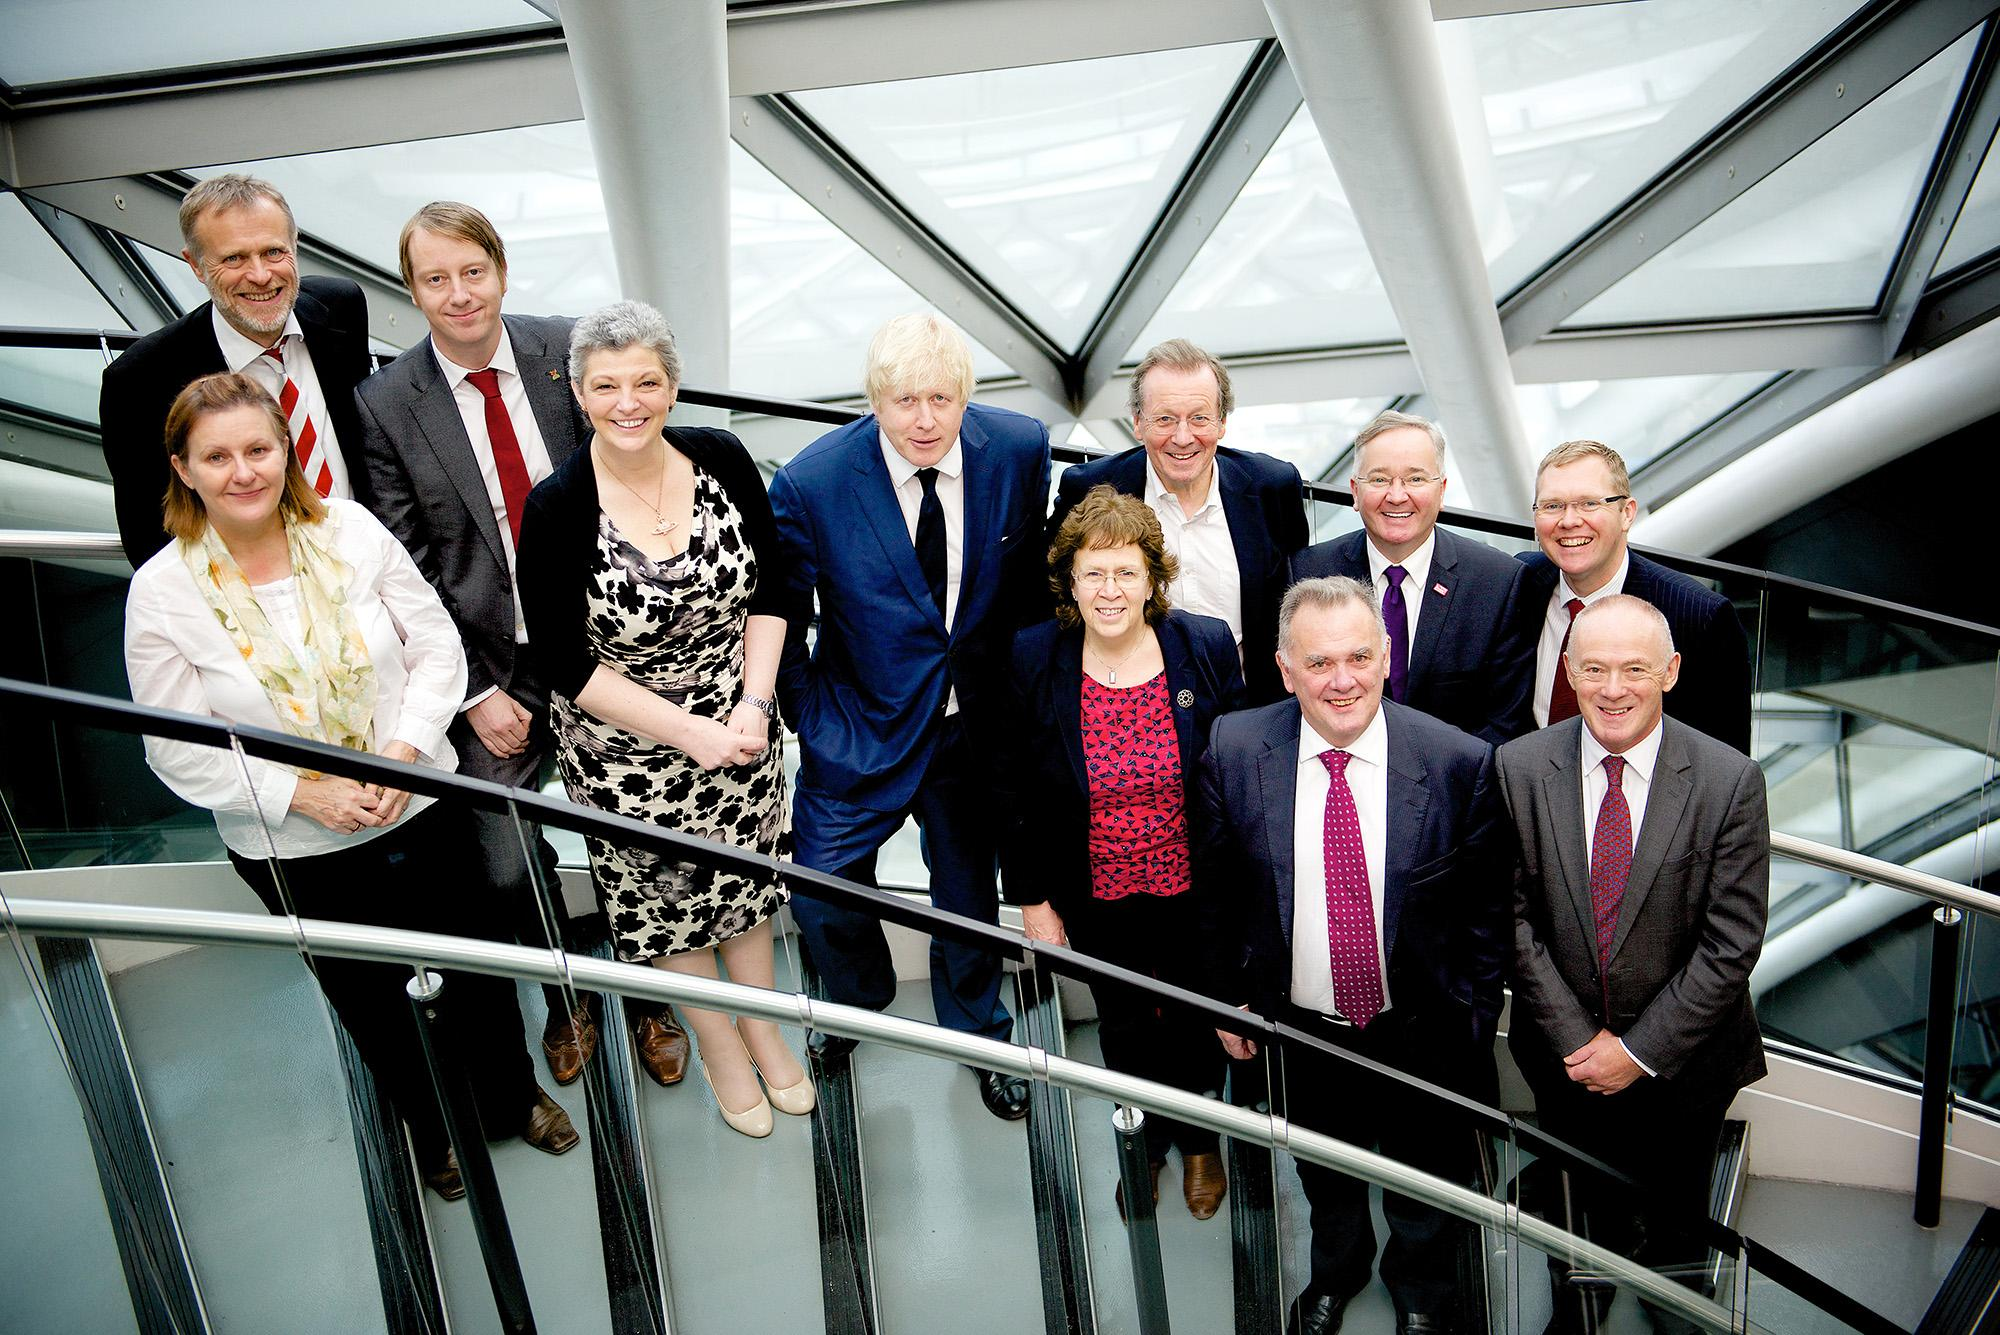 UK city leaders joined me today to reassert call for more fiscal powers to spur growth & jobs http://t.co/mFfHBFsDWe http://t.co/1AH7tKVusm